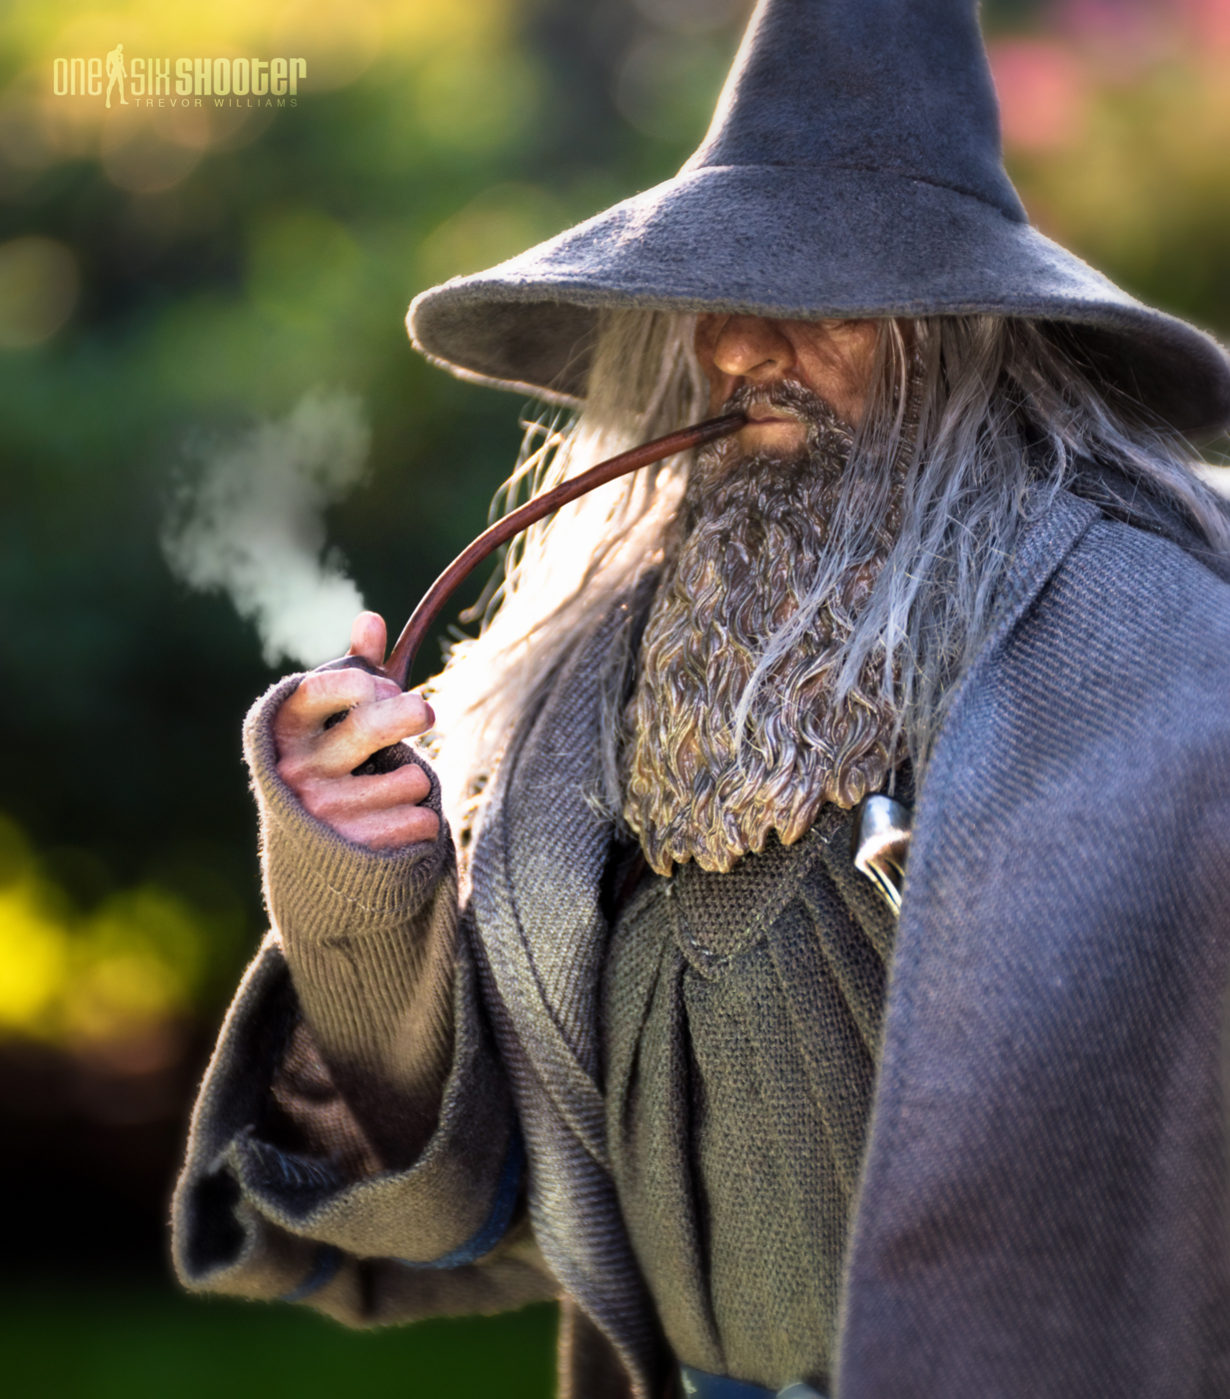 Gandalf the Grey in the Shire